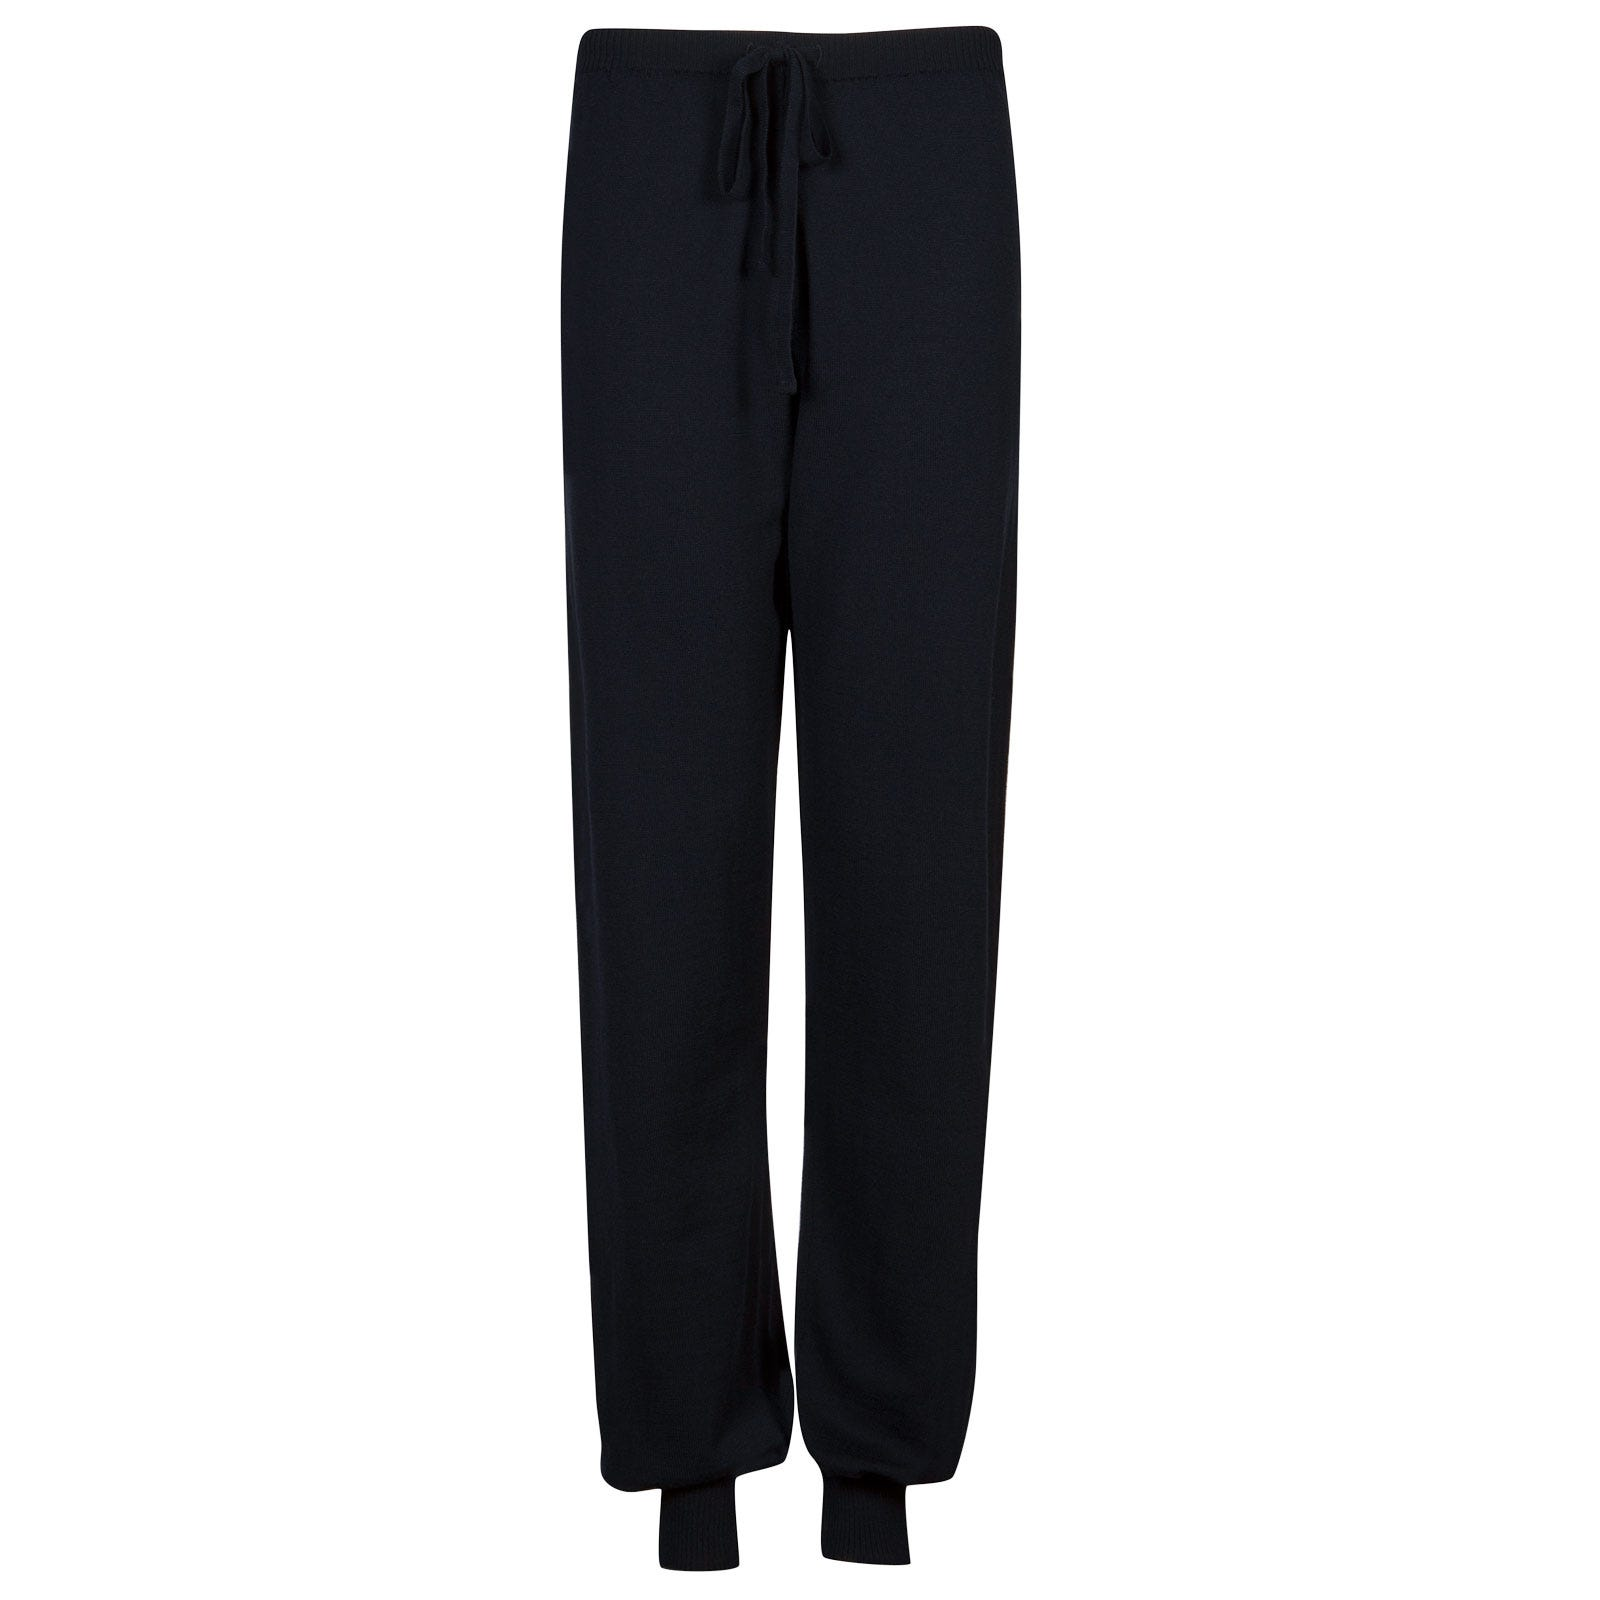 John Smedley Lock Merino Wool Trouser in Midnight-S